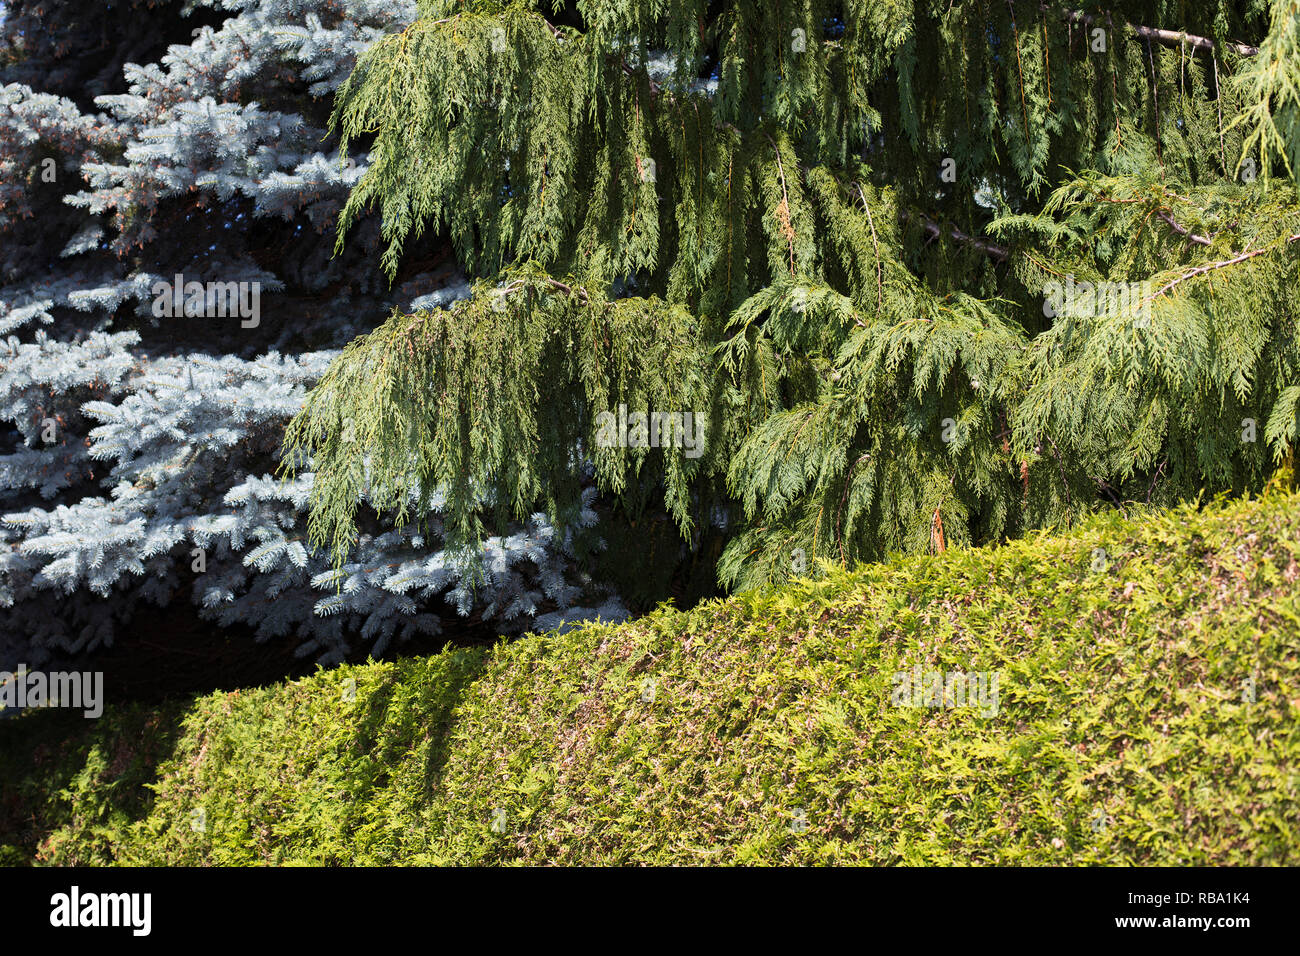 A trimmed hedge with two trees - Stock Image